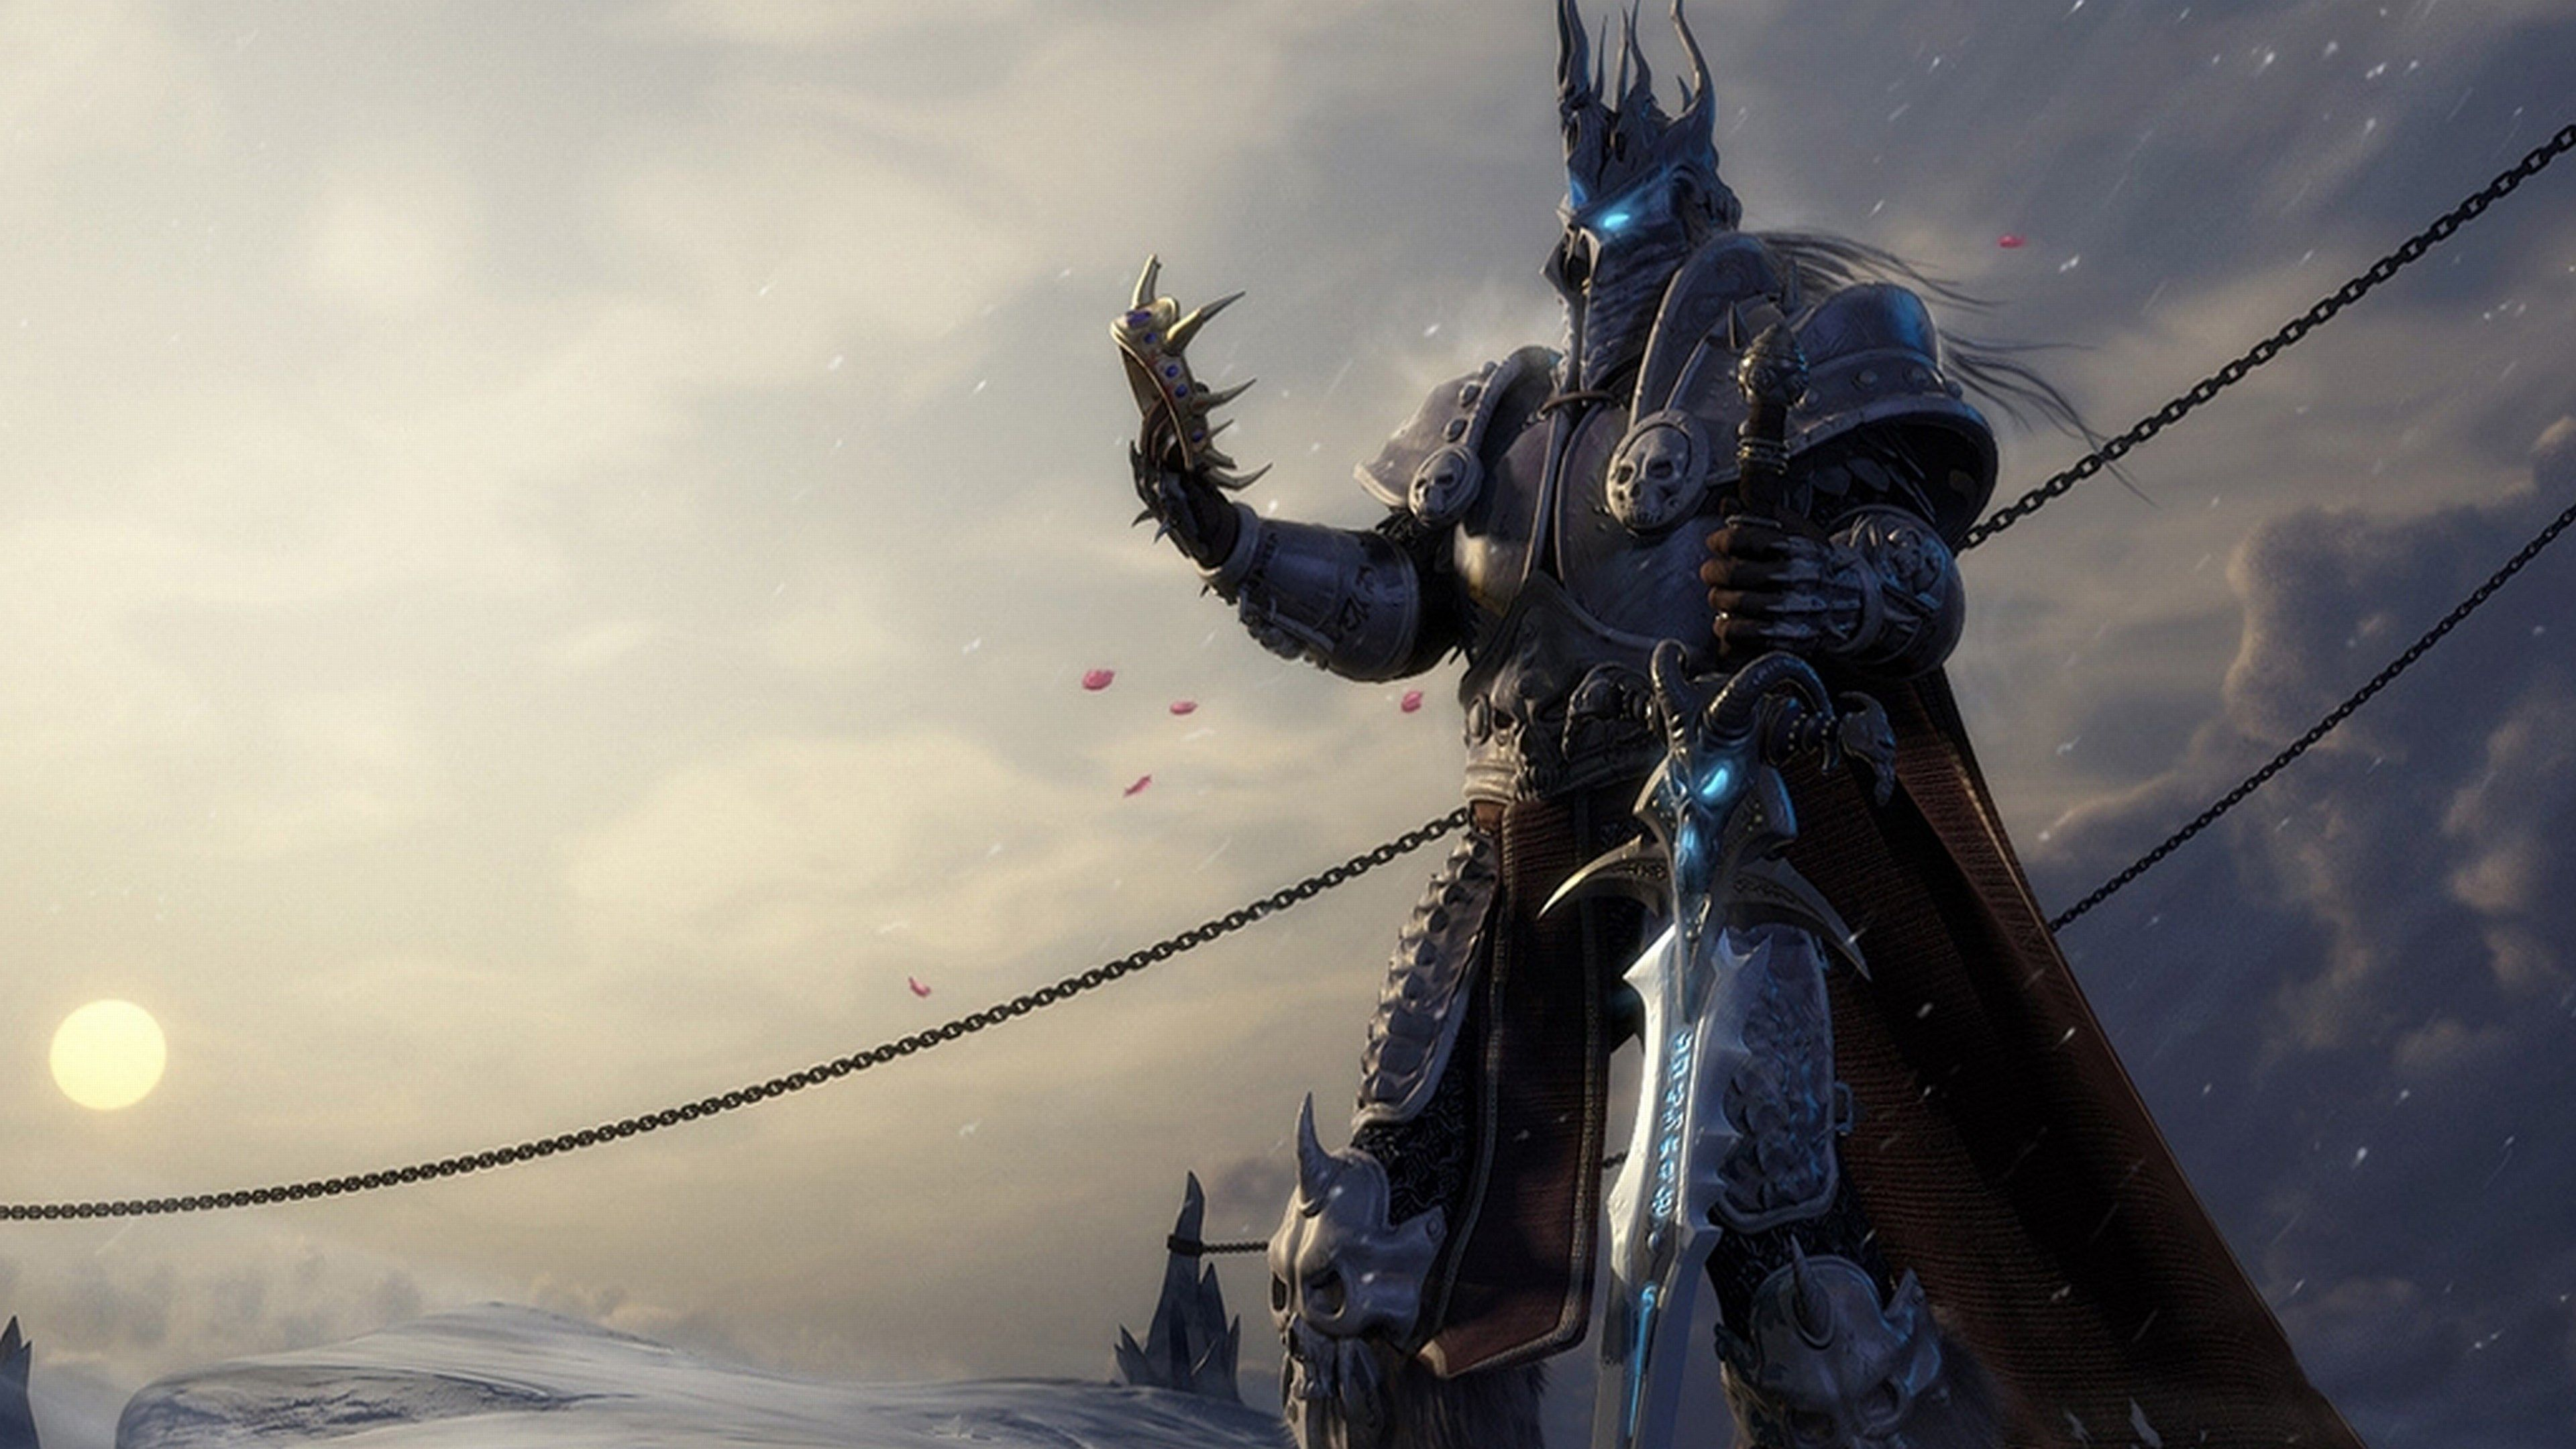 Hd Arthas Wallpaper World Of Warcraft Estilos De Homens Negros Historias